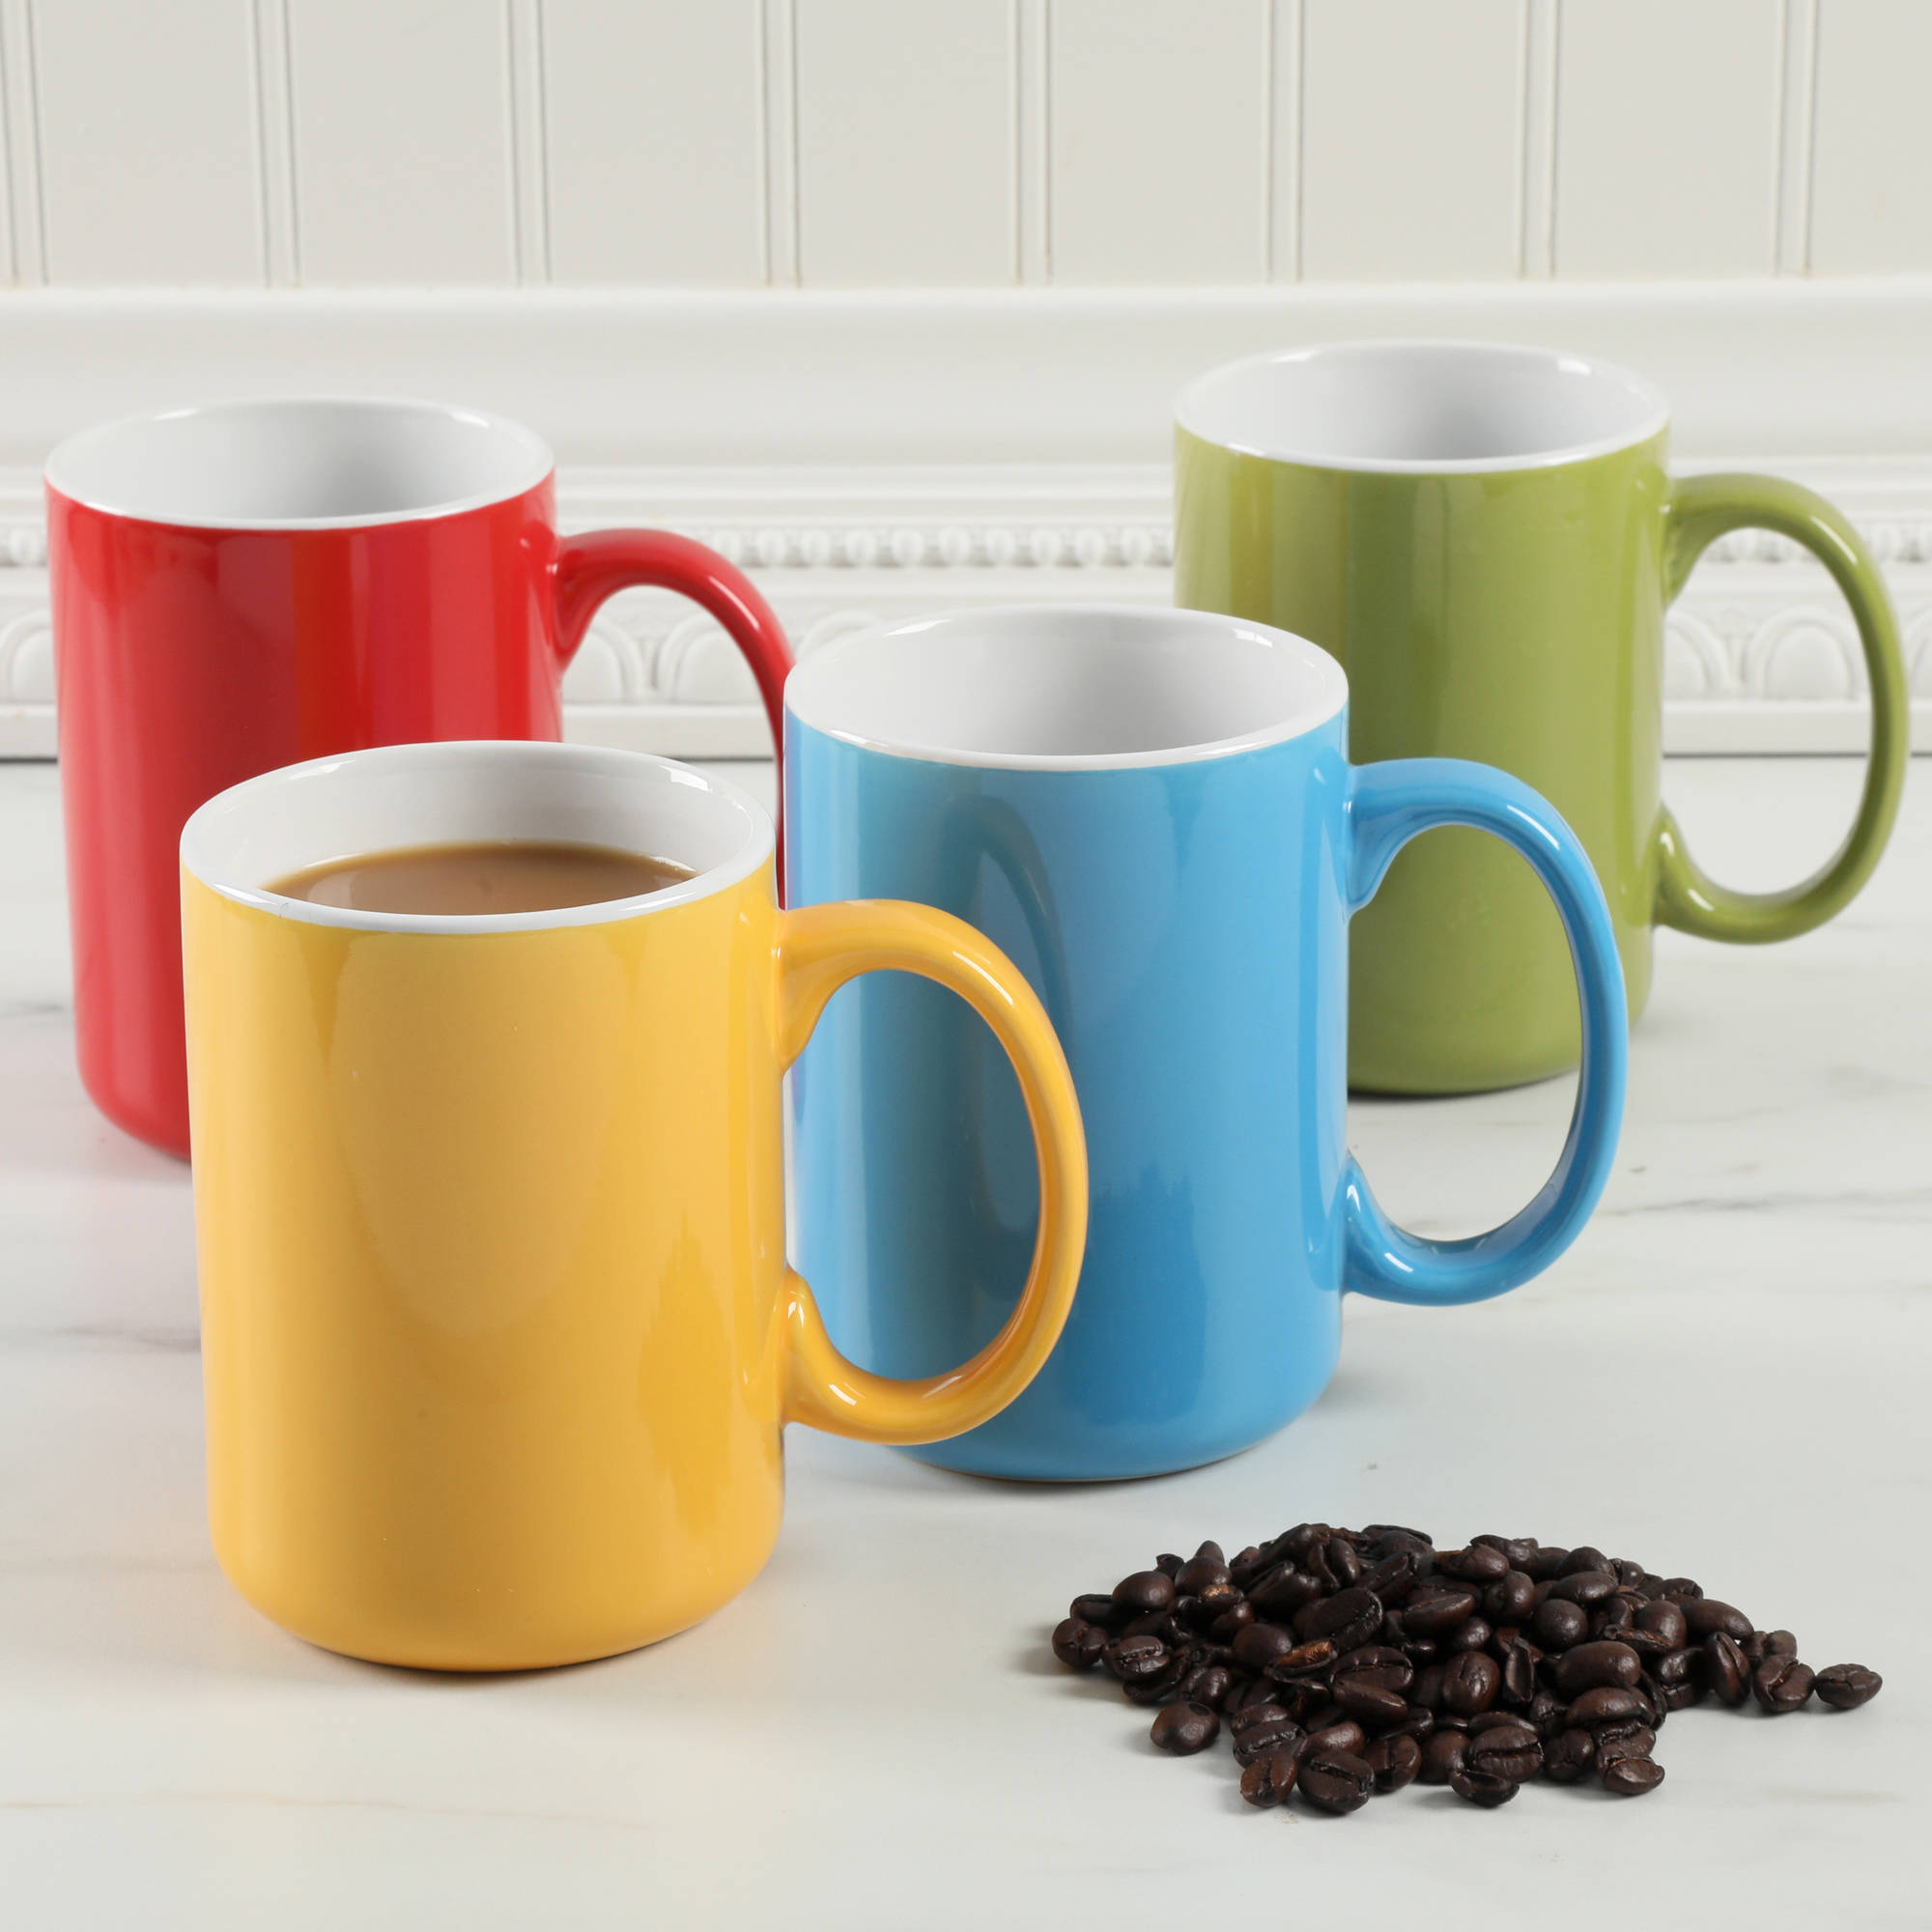 Gibson Home Vibrancy 17 oz Assorted Colors, Set Of 4